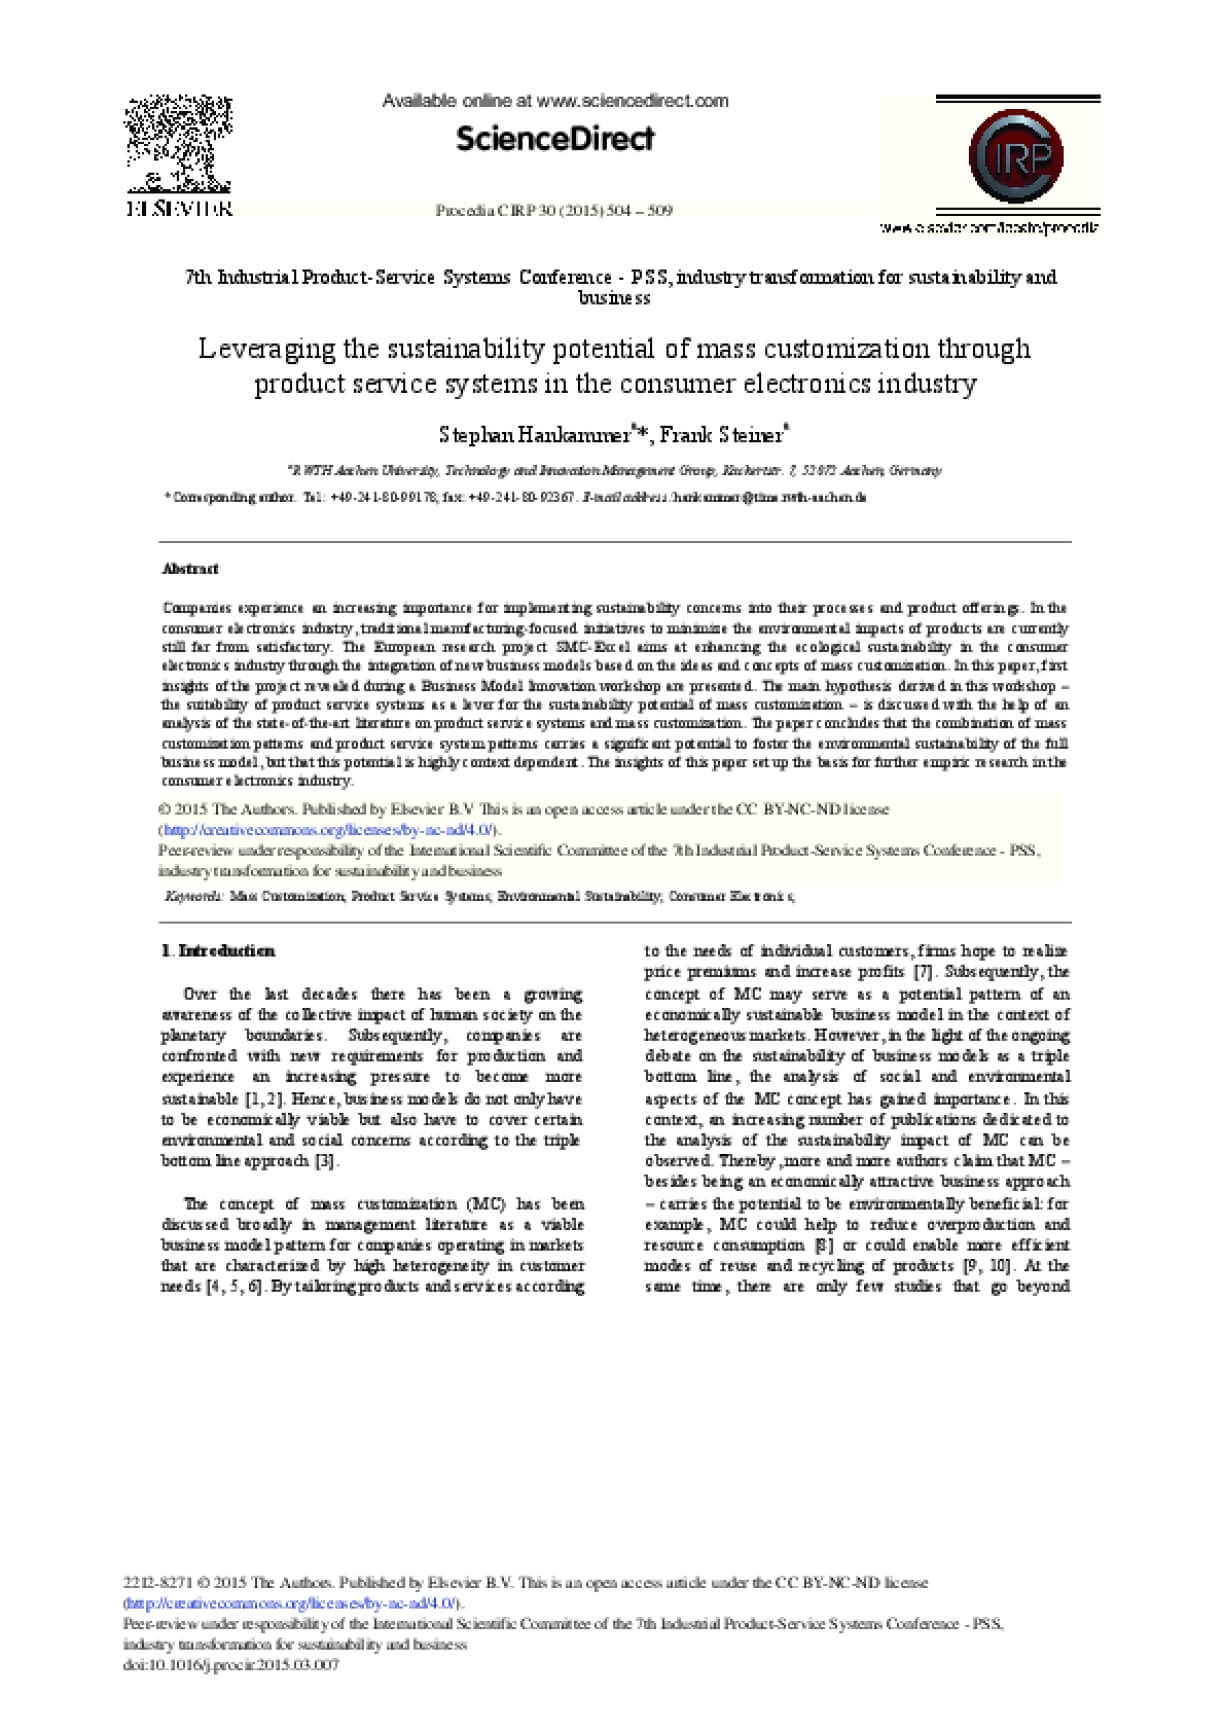 Leveraging the Sustainability Potential of Mass Customization Through Product Service Systems in the Consumer Electronics Industry